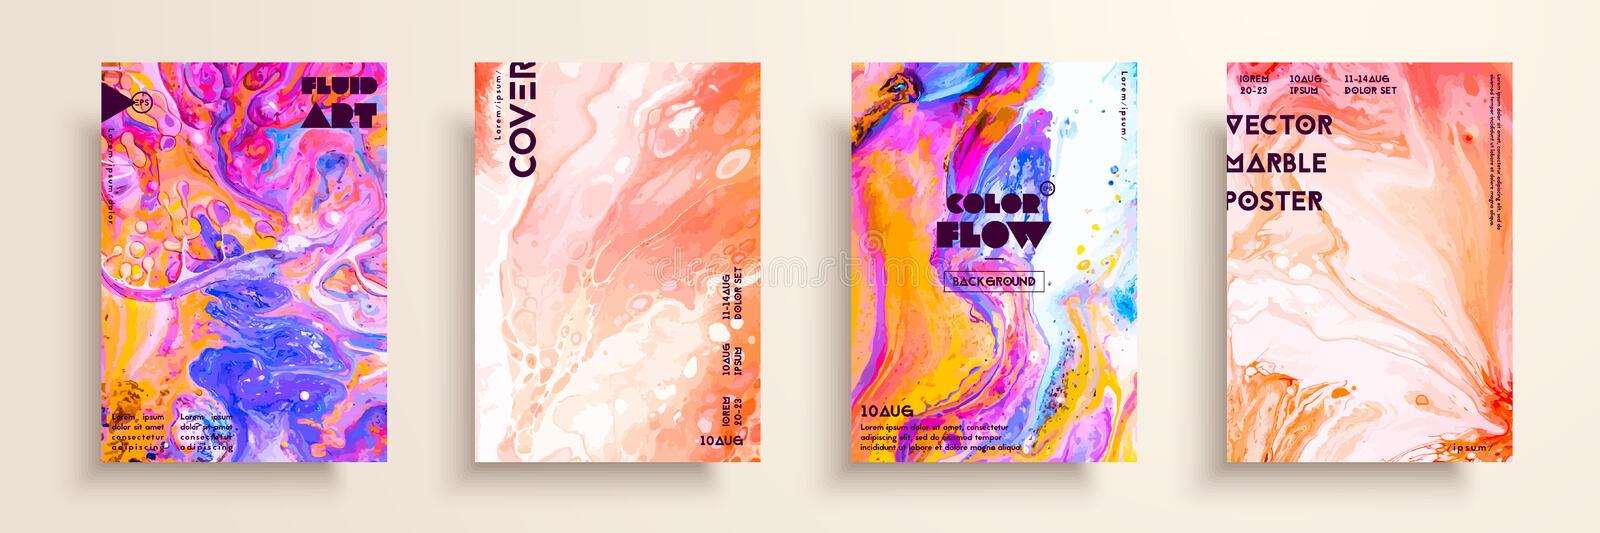 Covers with acrylic liquid textures. Colorful abstract composition. Modern artwork. Creative fluid colors backgrounds vector illustration